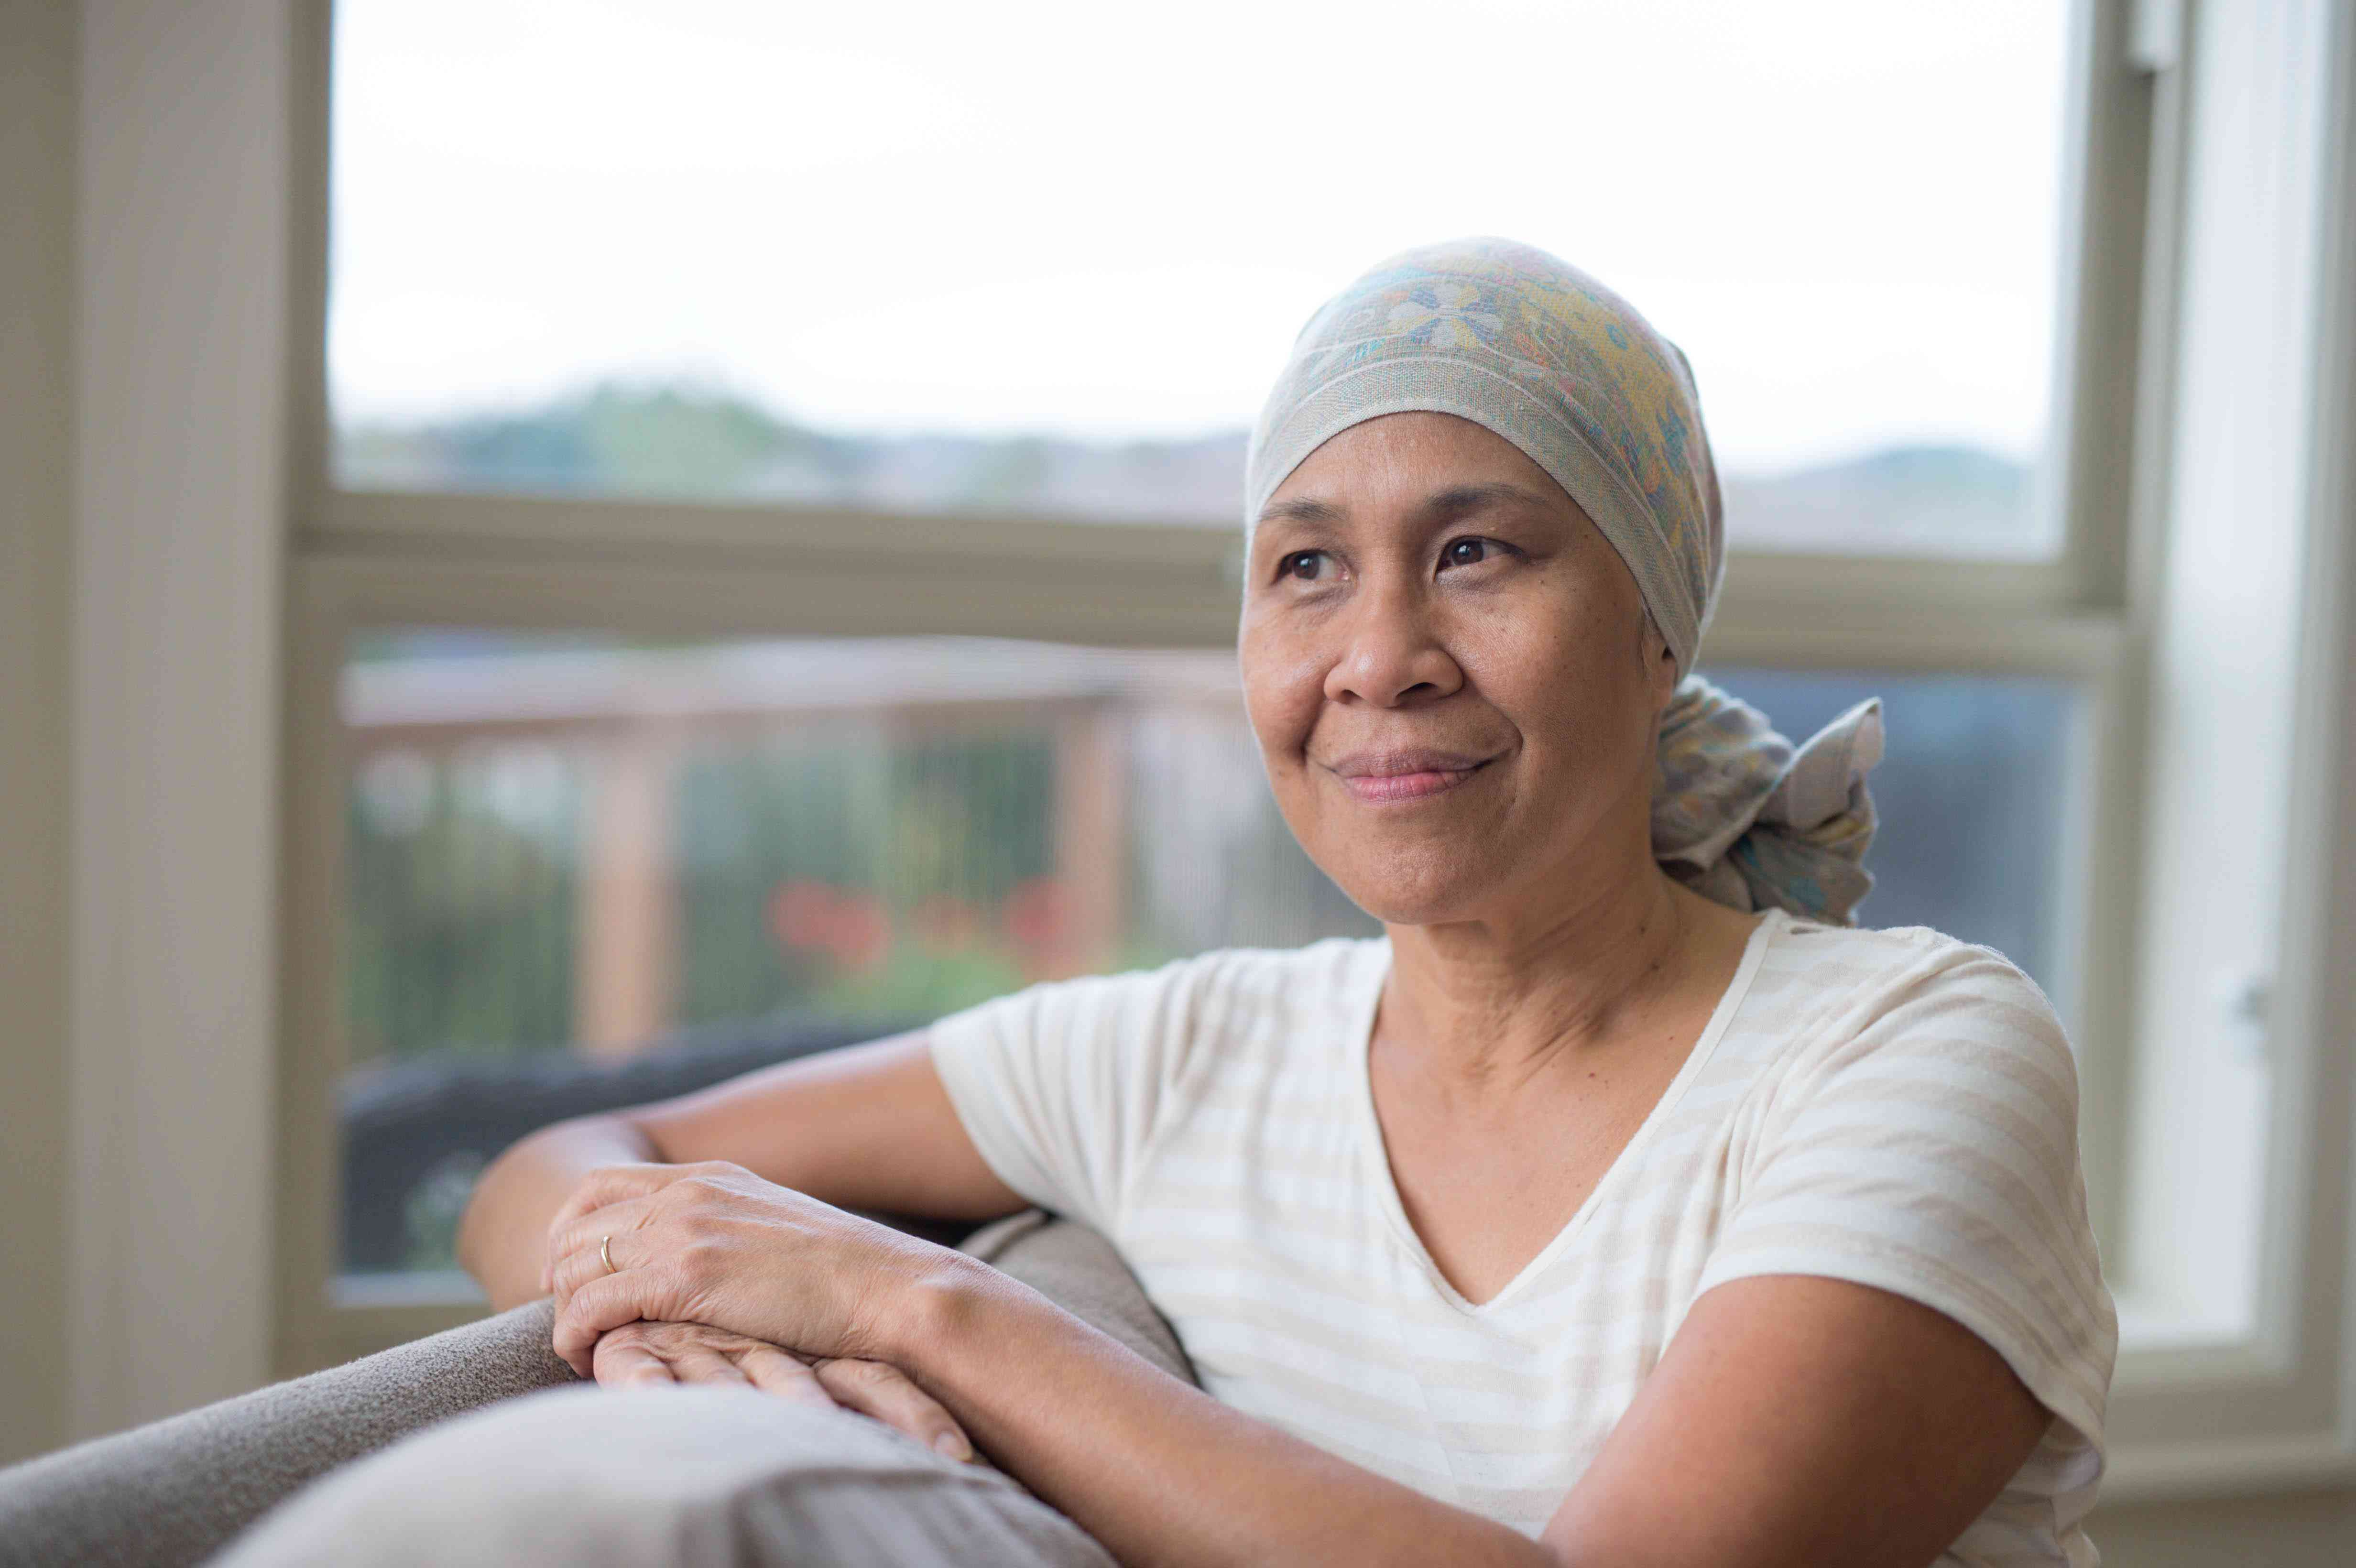 Mature ethnic woman with cancer wearing headwrap on couch